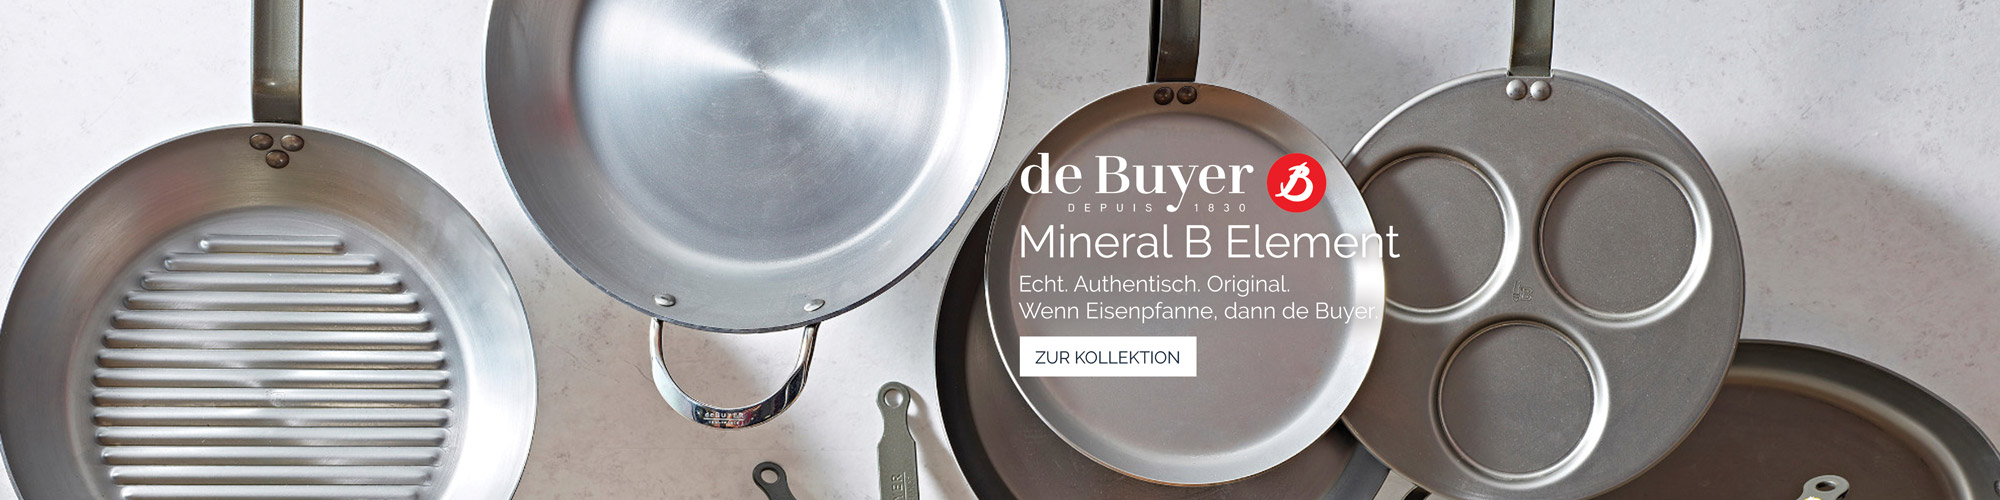 de Buyer Mineral B Element Eisenpfannen